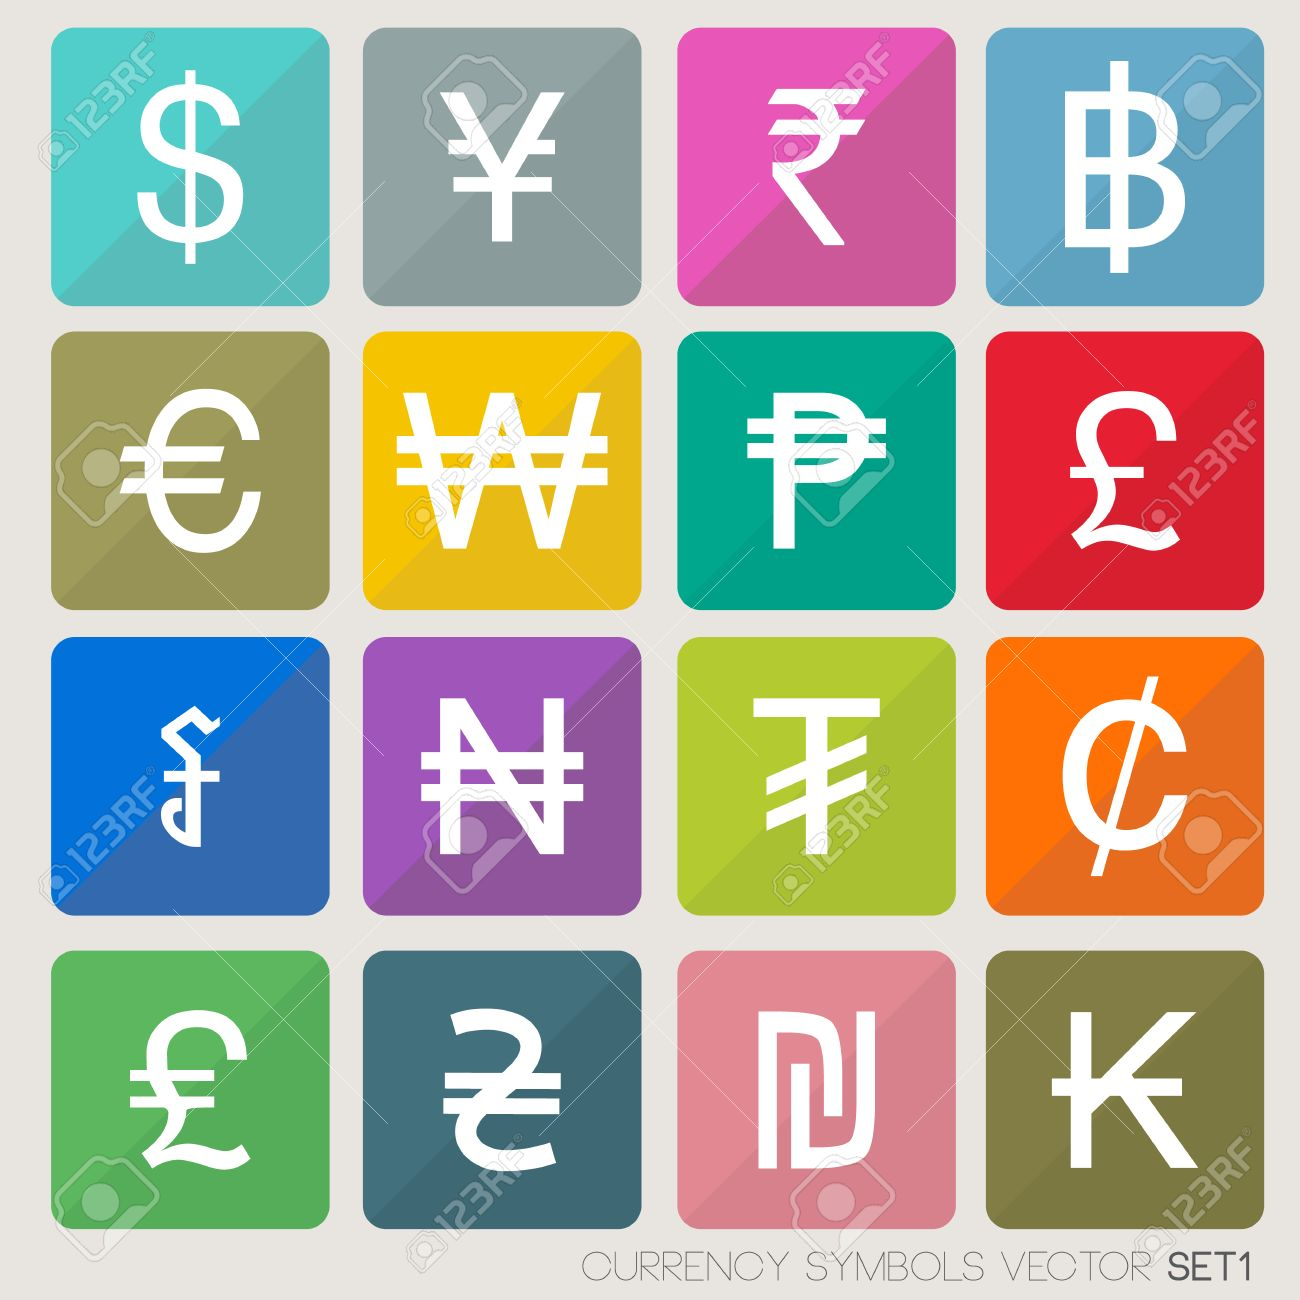 Currency Icons Set Currency Symbols Vector World Money Royalty Free